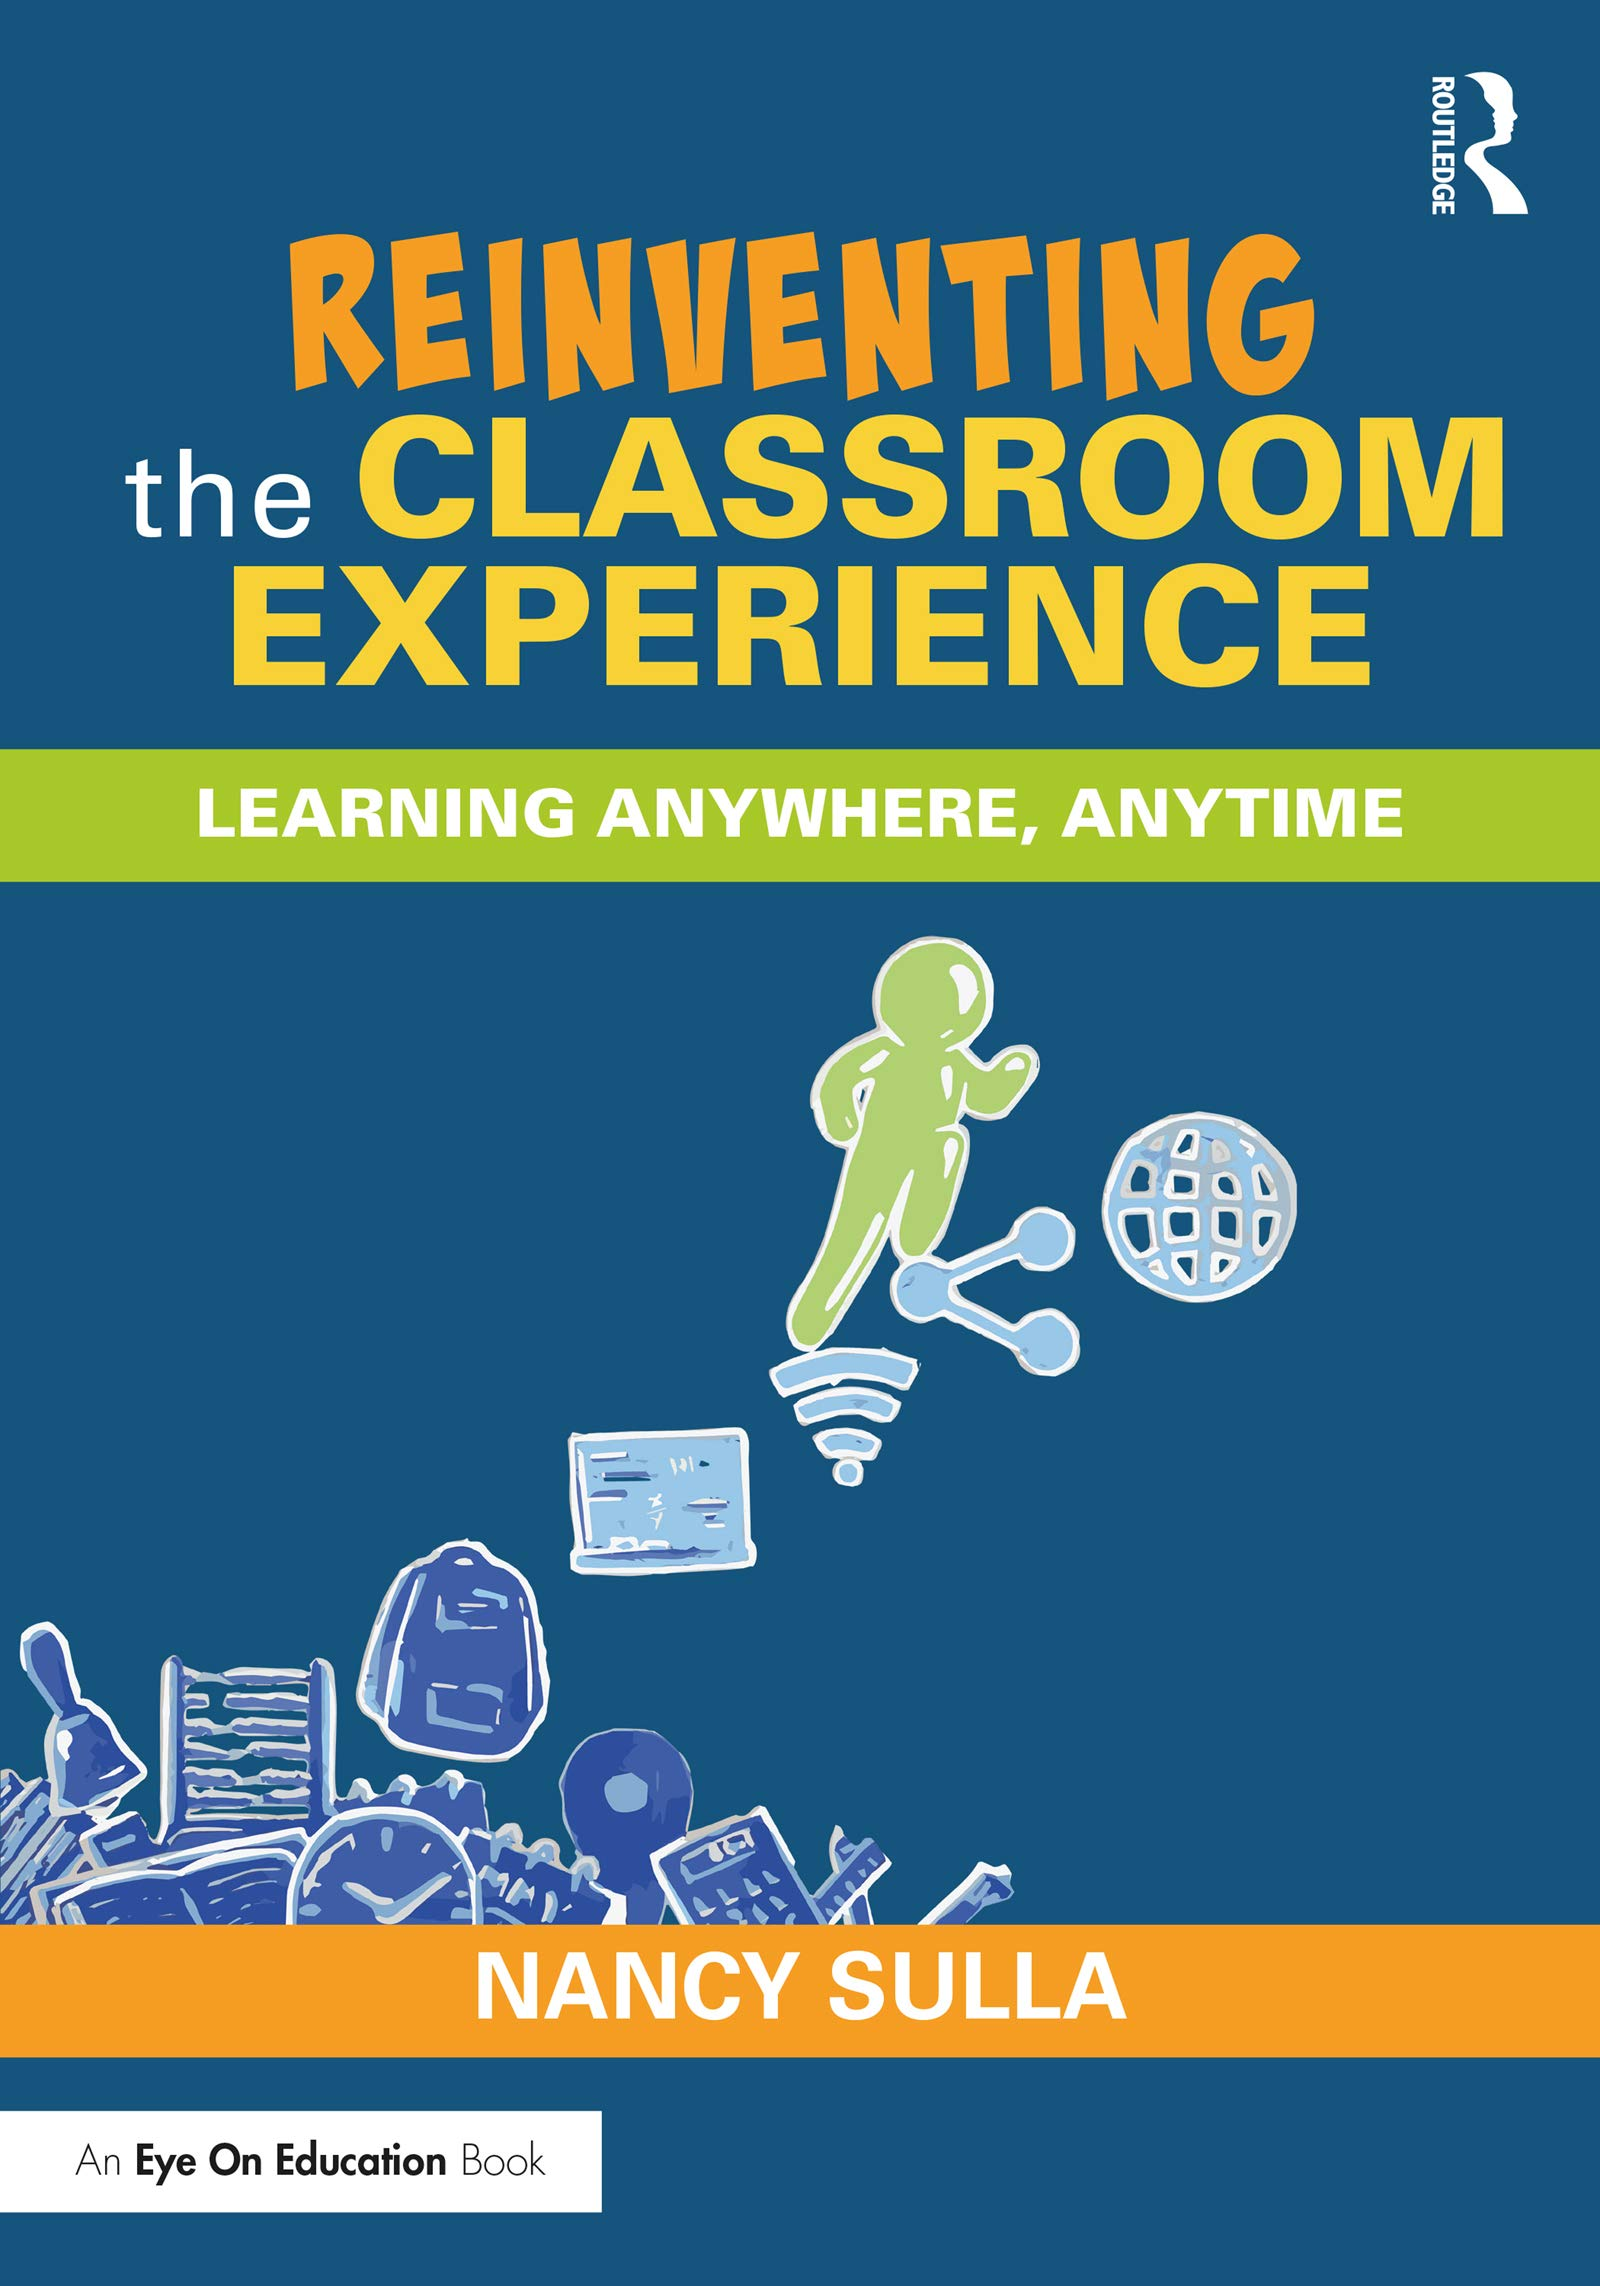 Amazon.com Reinventing the Classroom Experience Learning ...